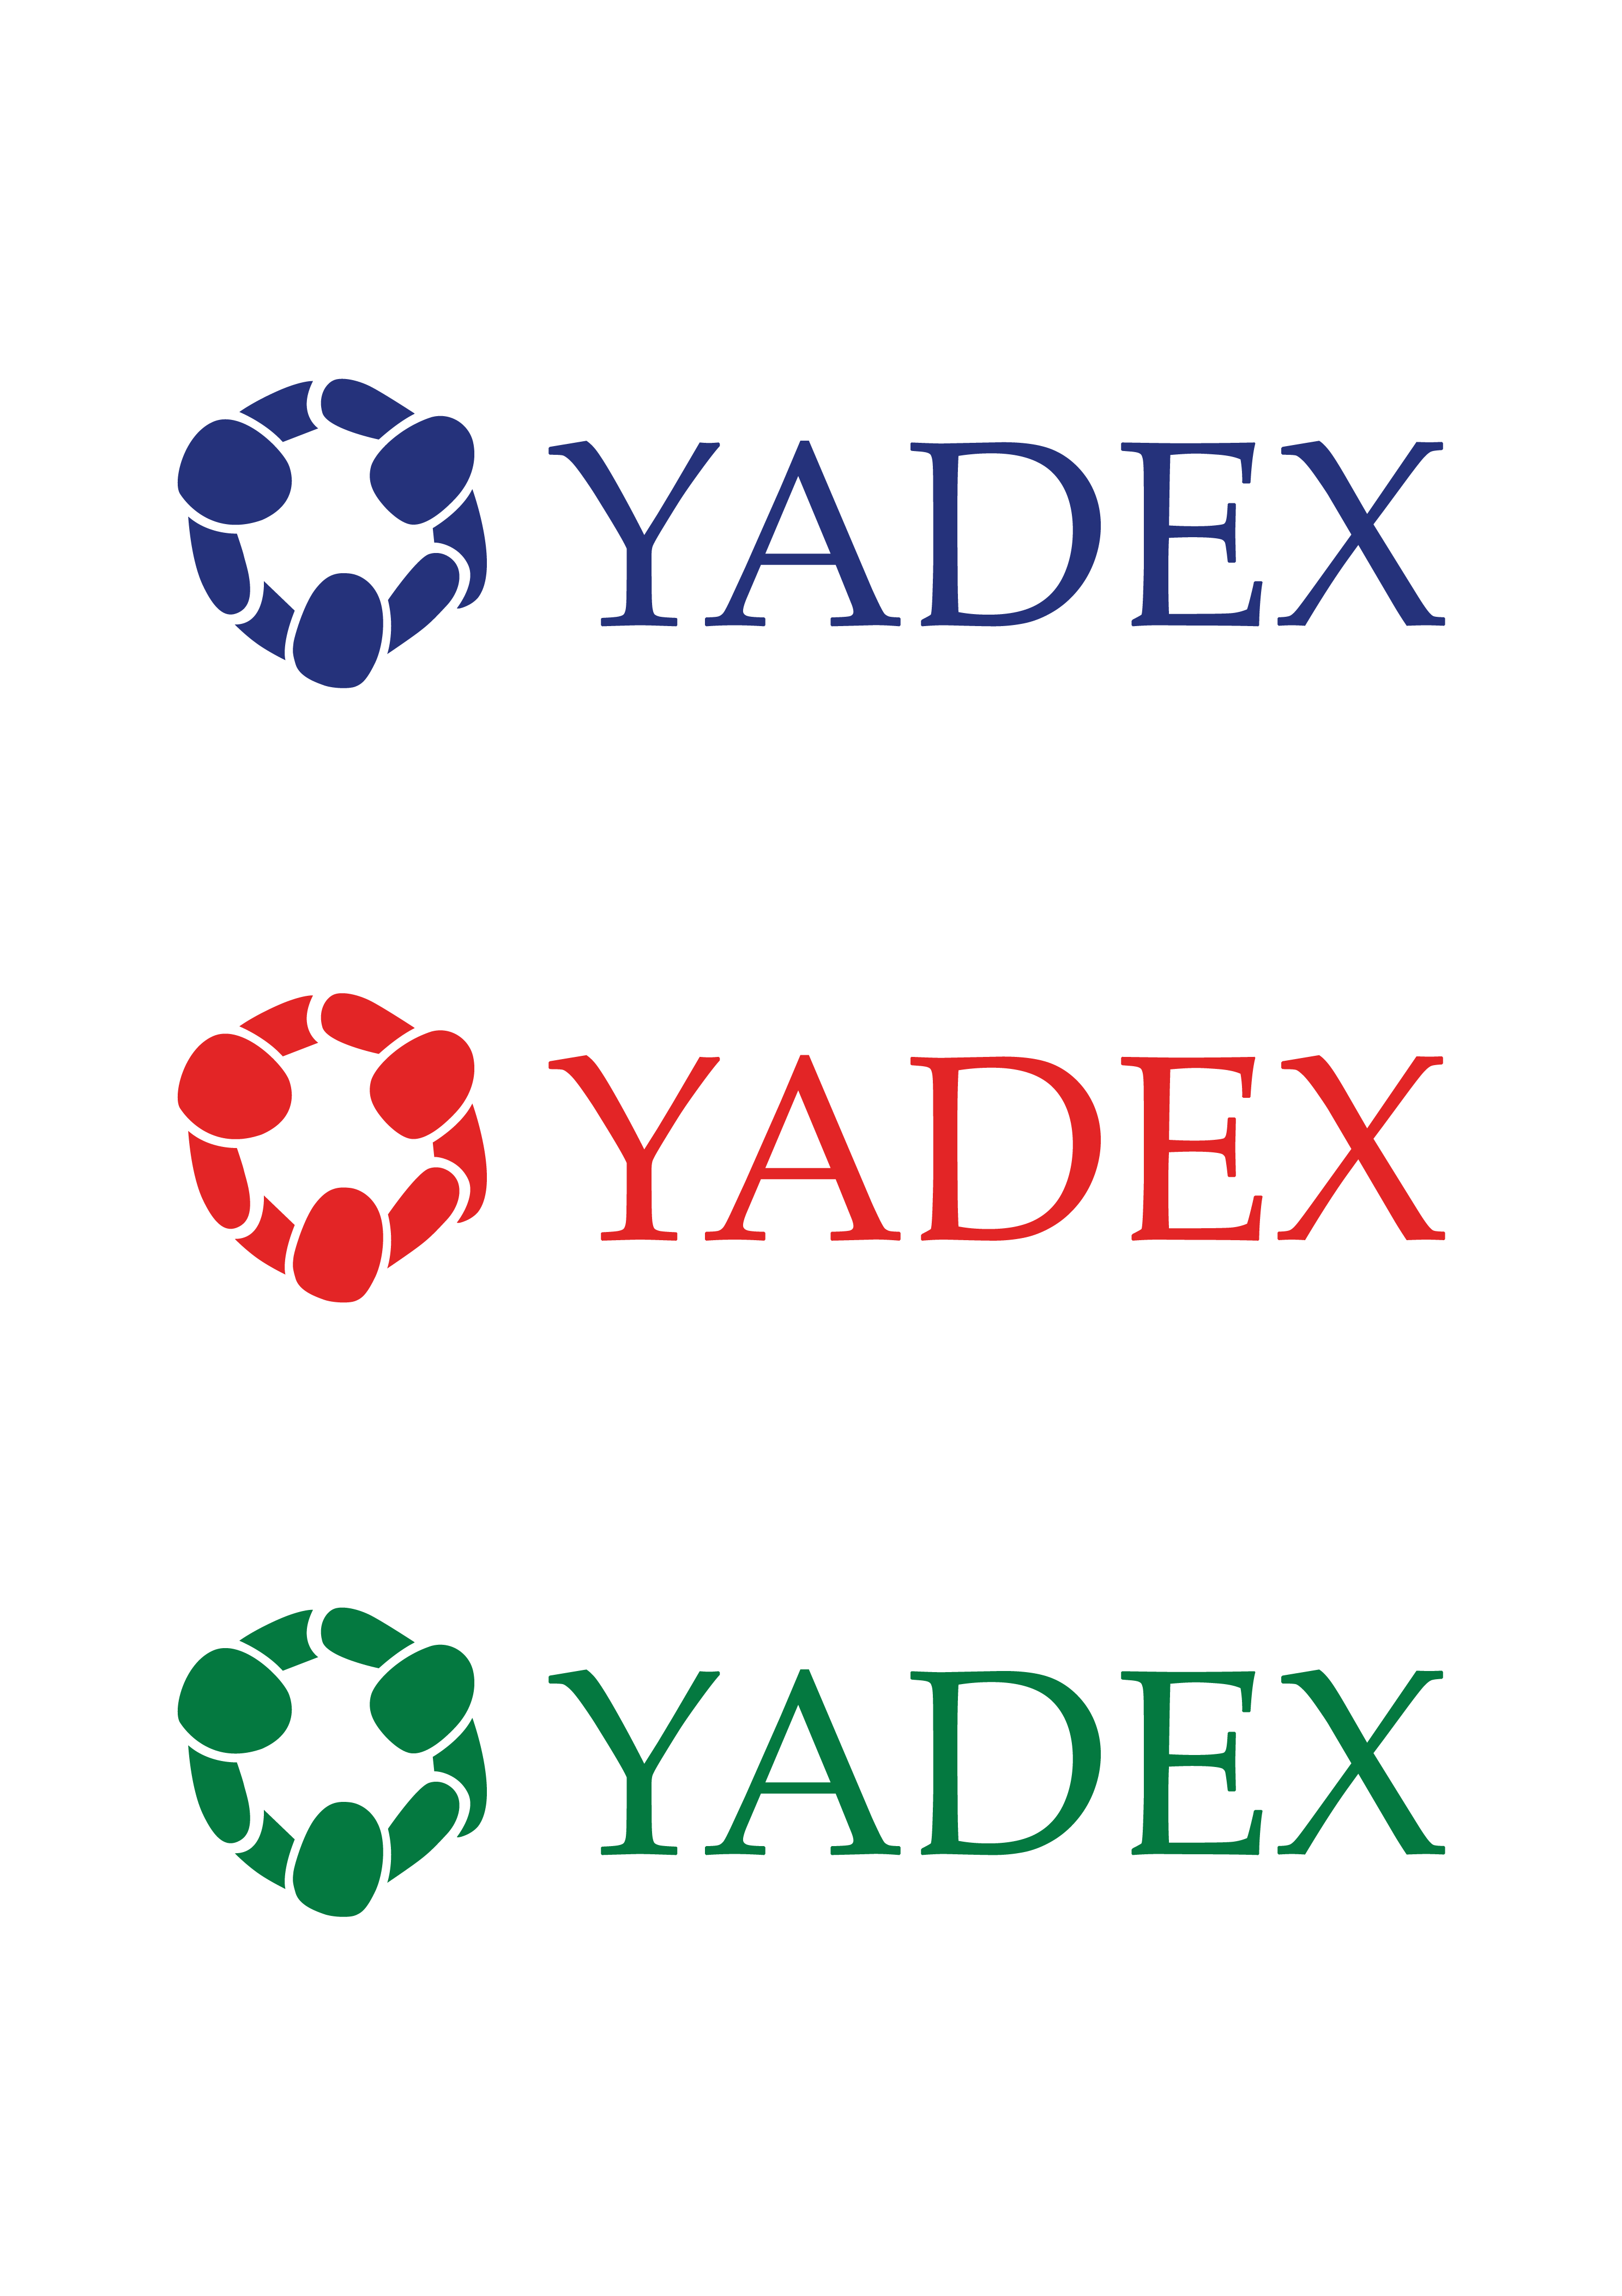 yadex_reverses_color.png